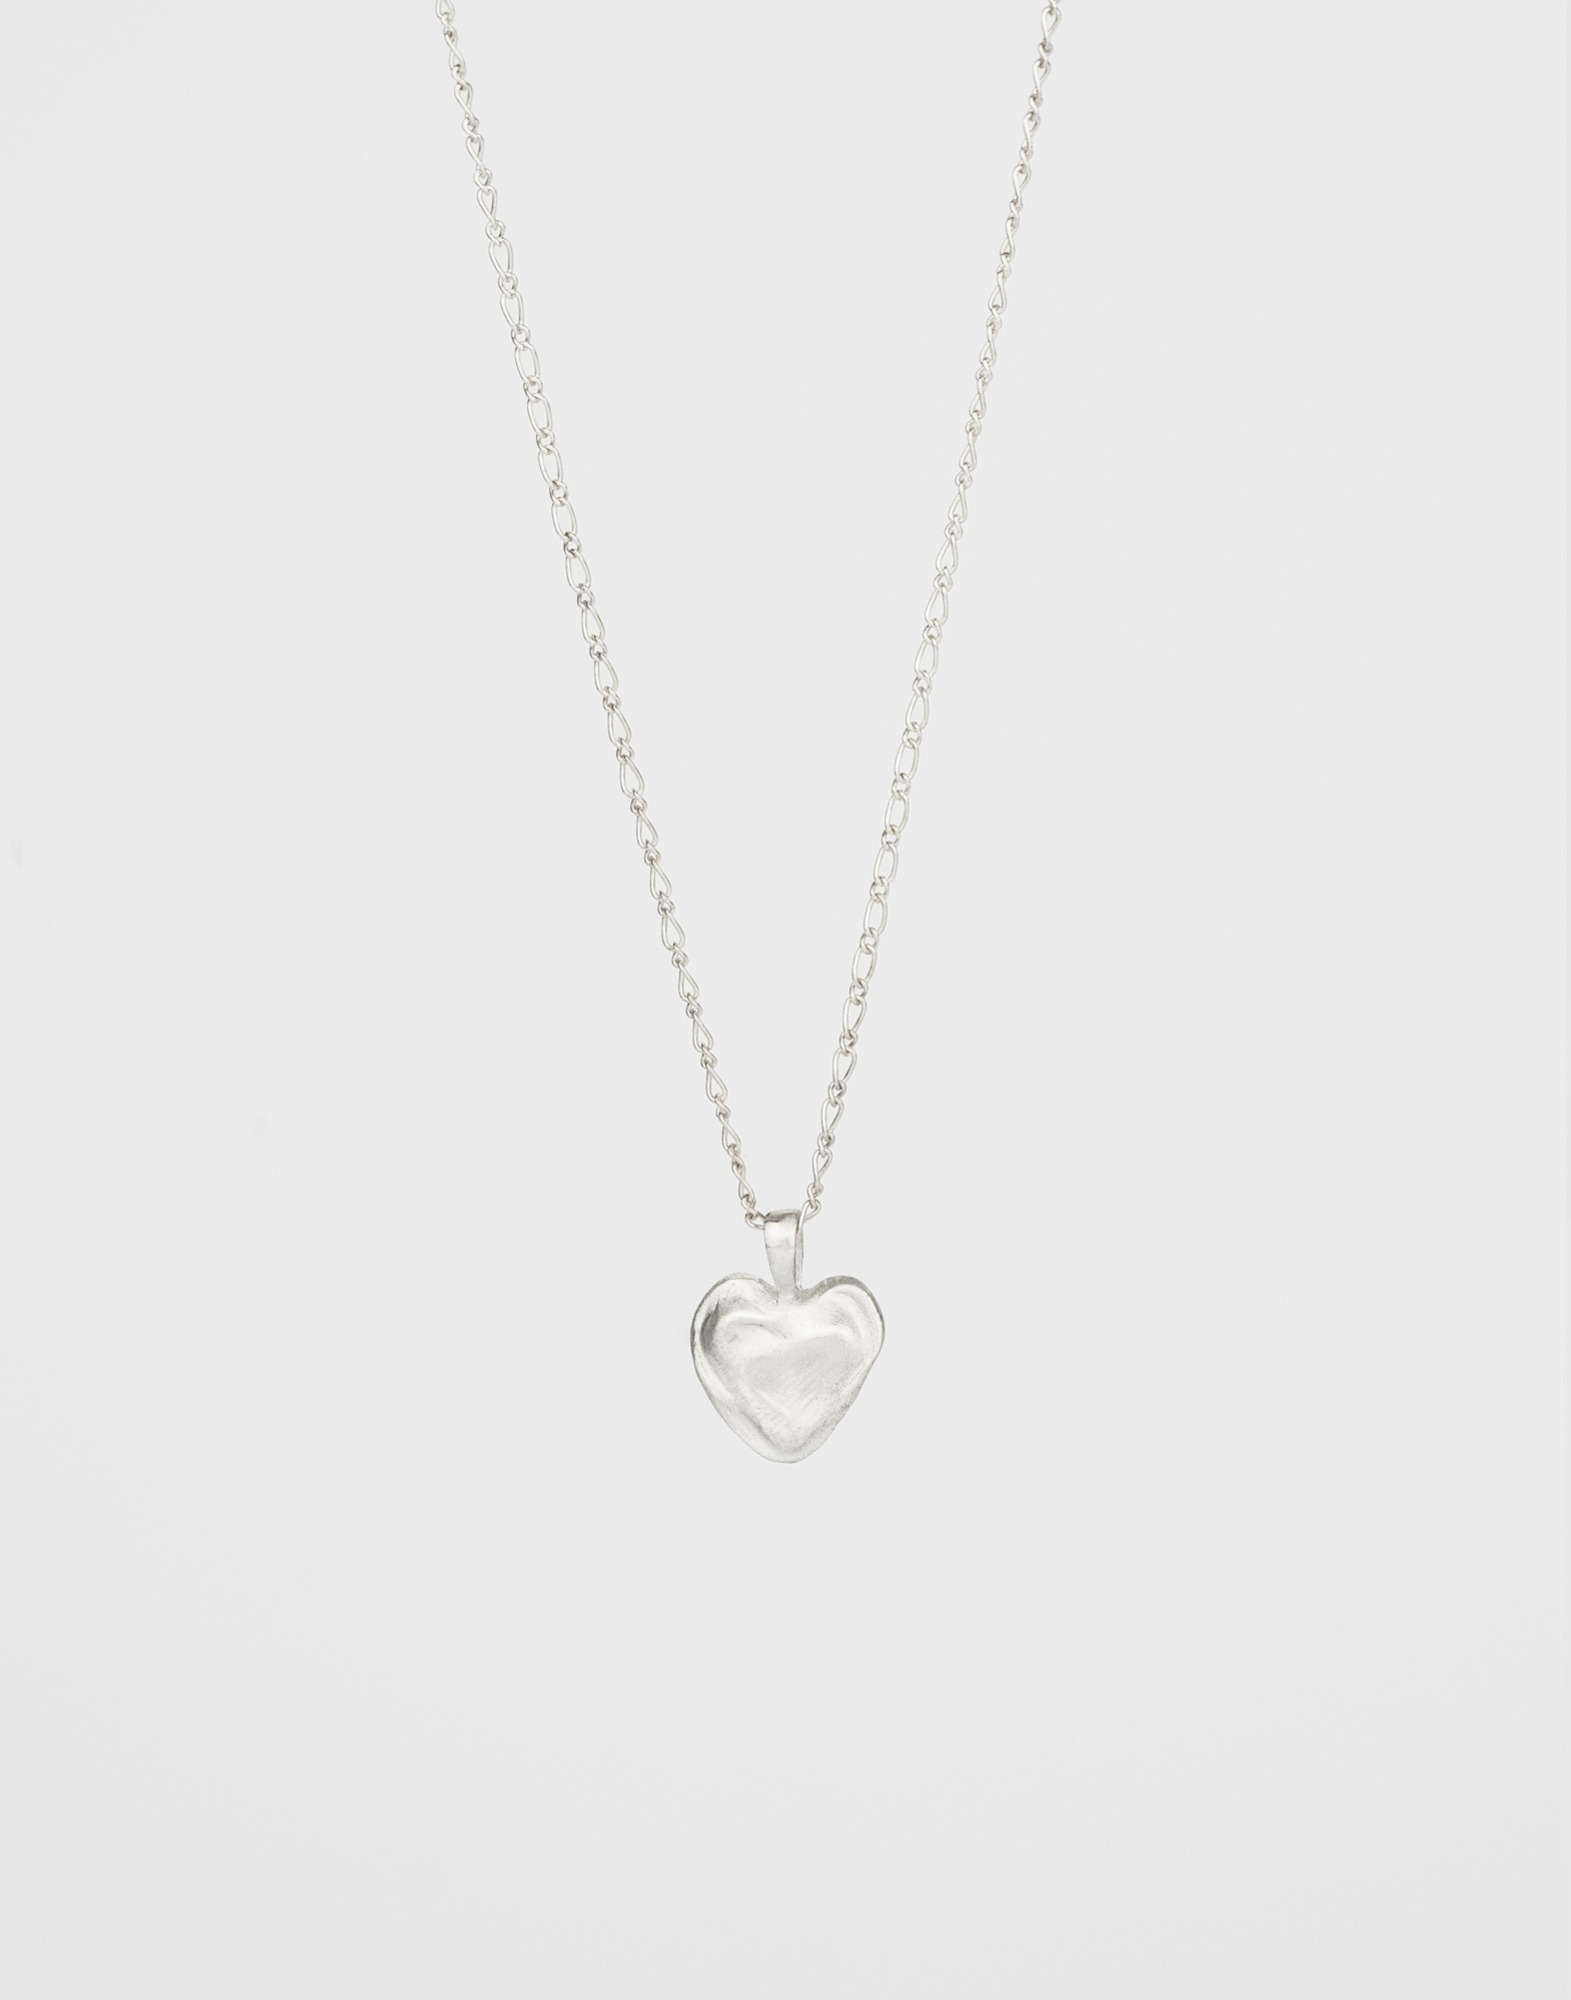 999 silver base heart necklace